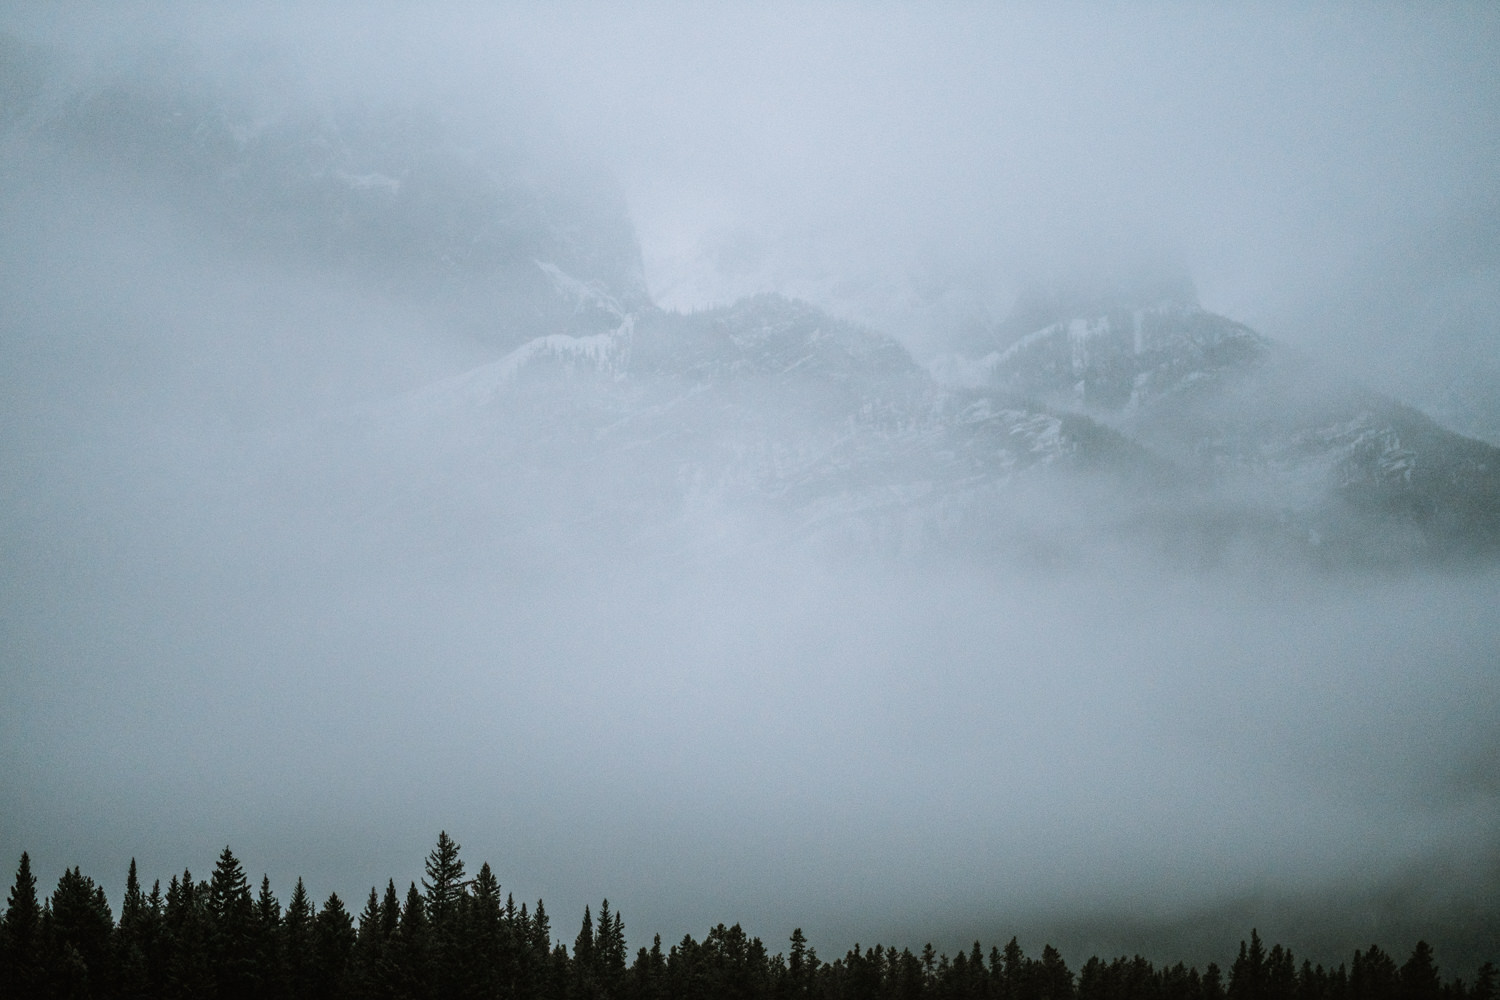 Landscape photo of mountains covered in clouds